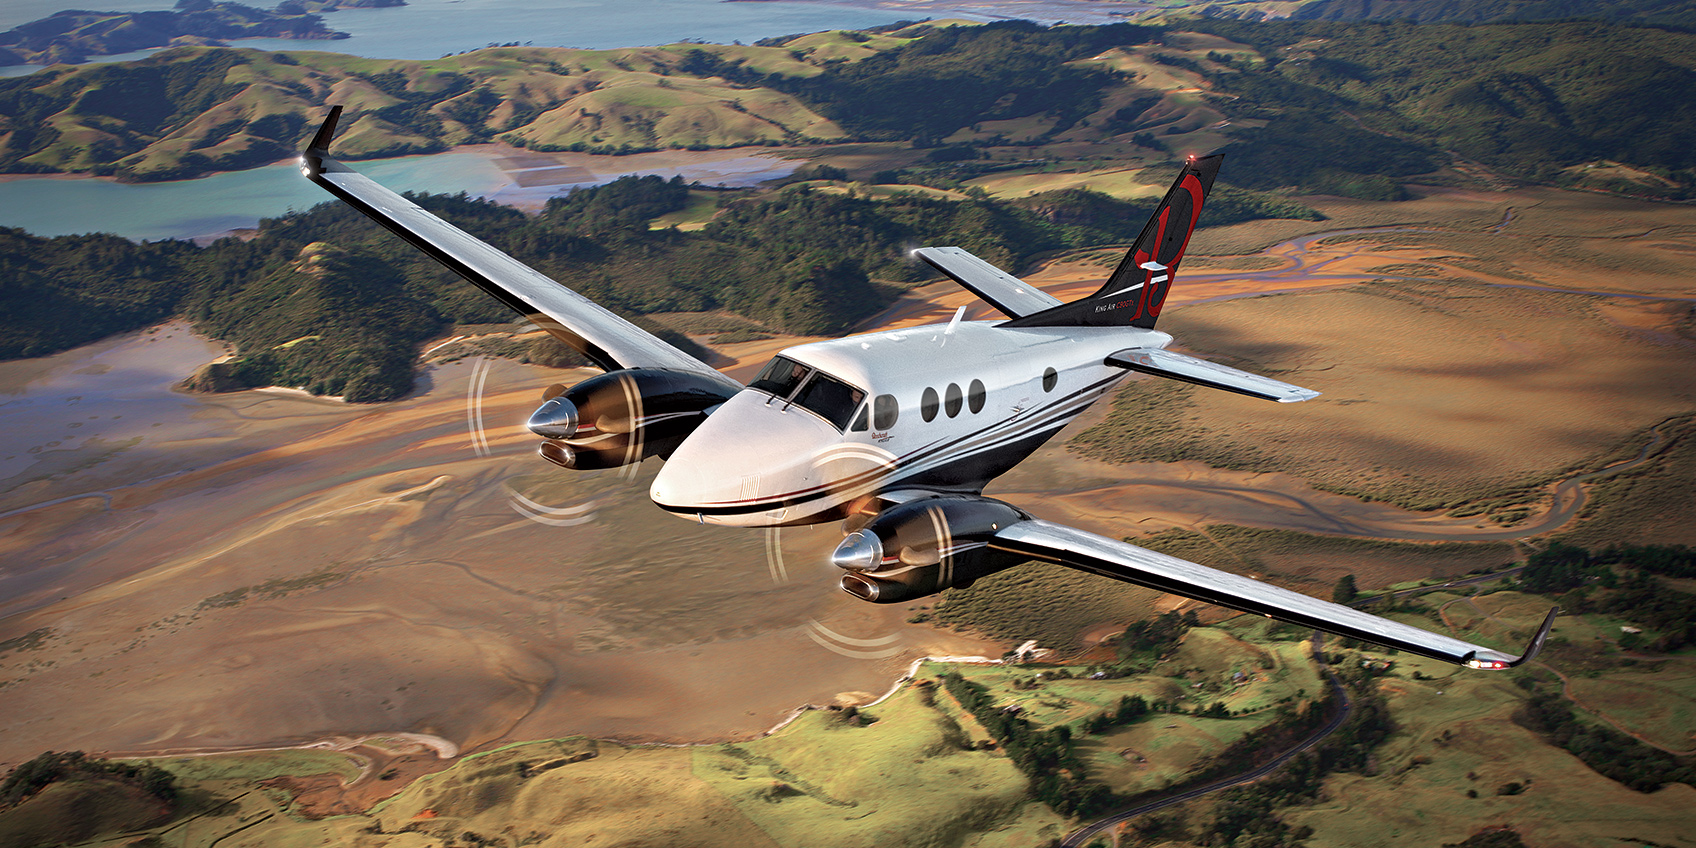 King Air C90GTx in flight